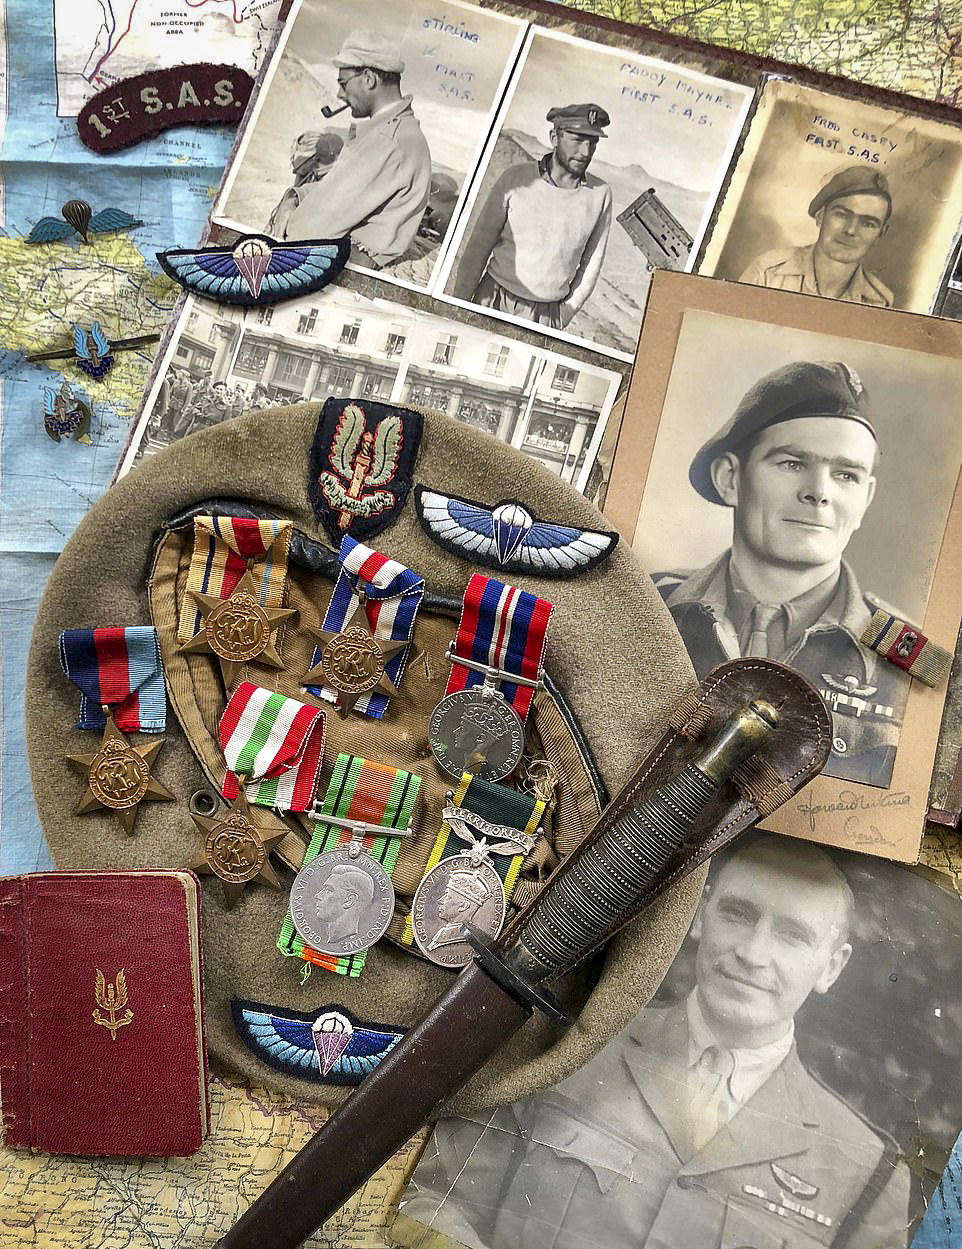 sas fred casey archive